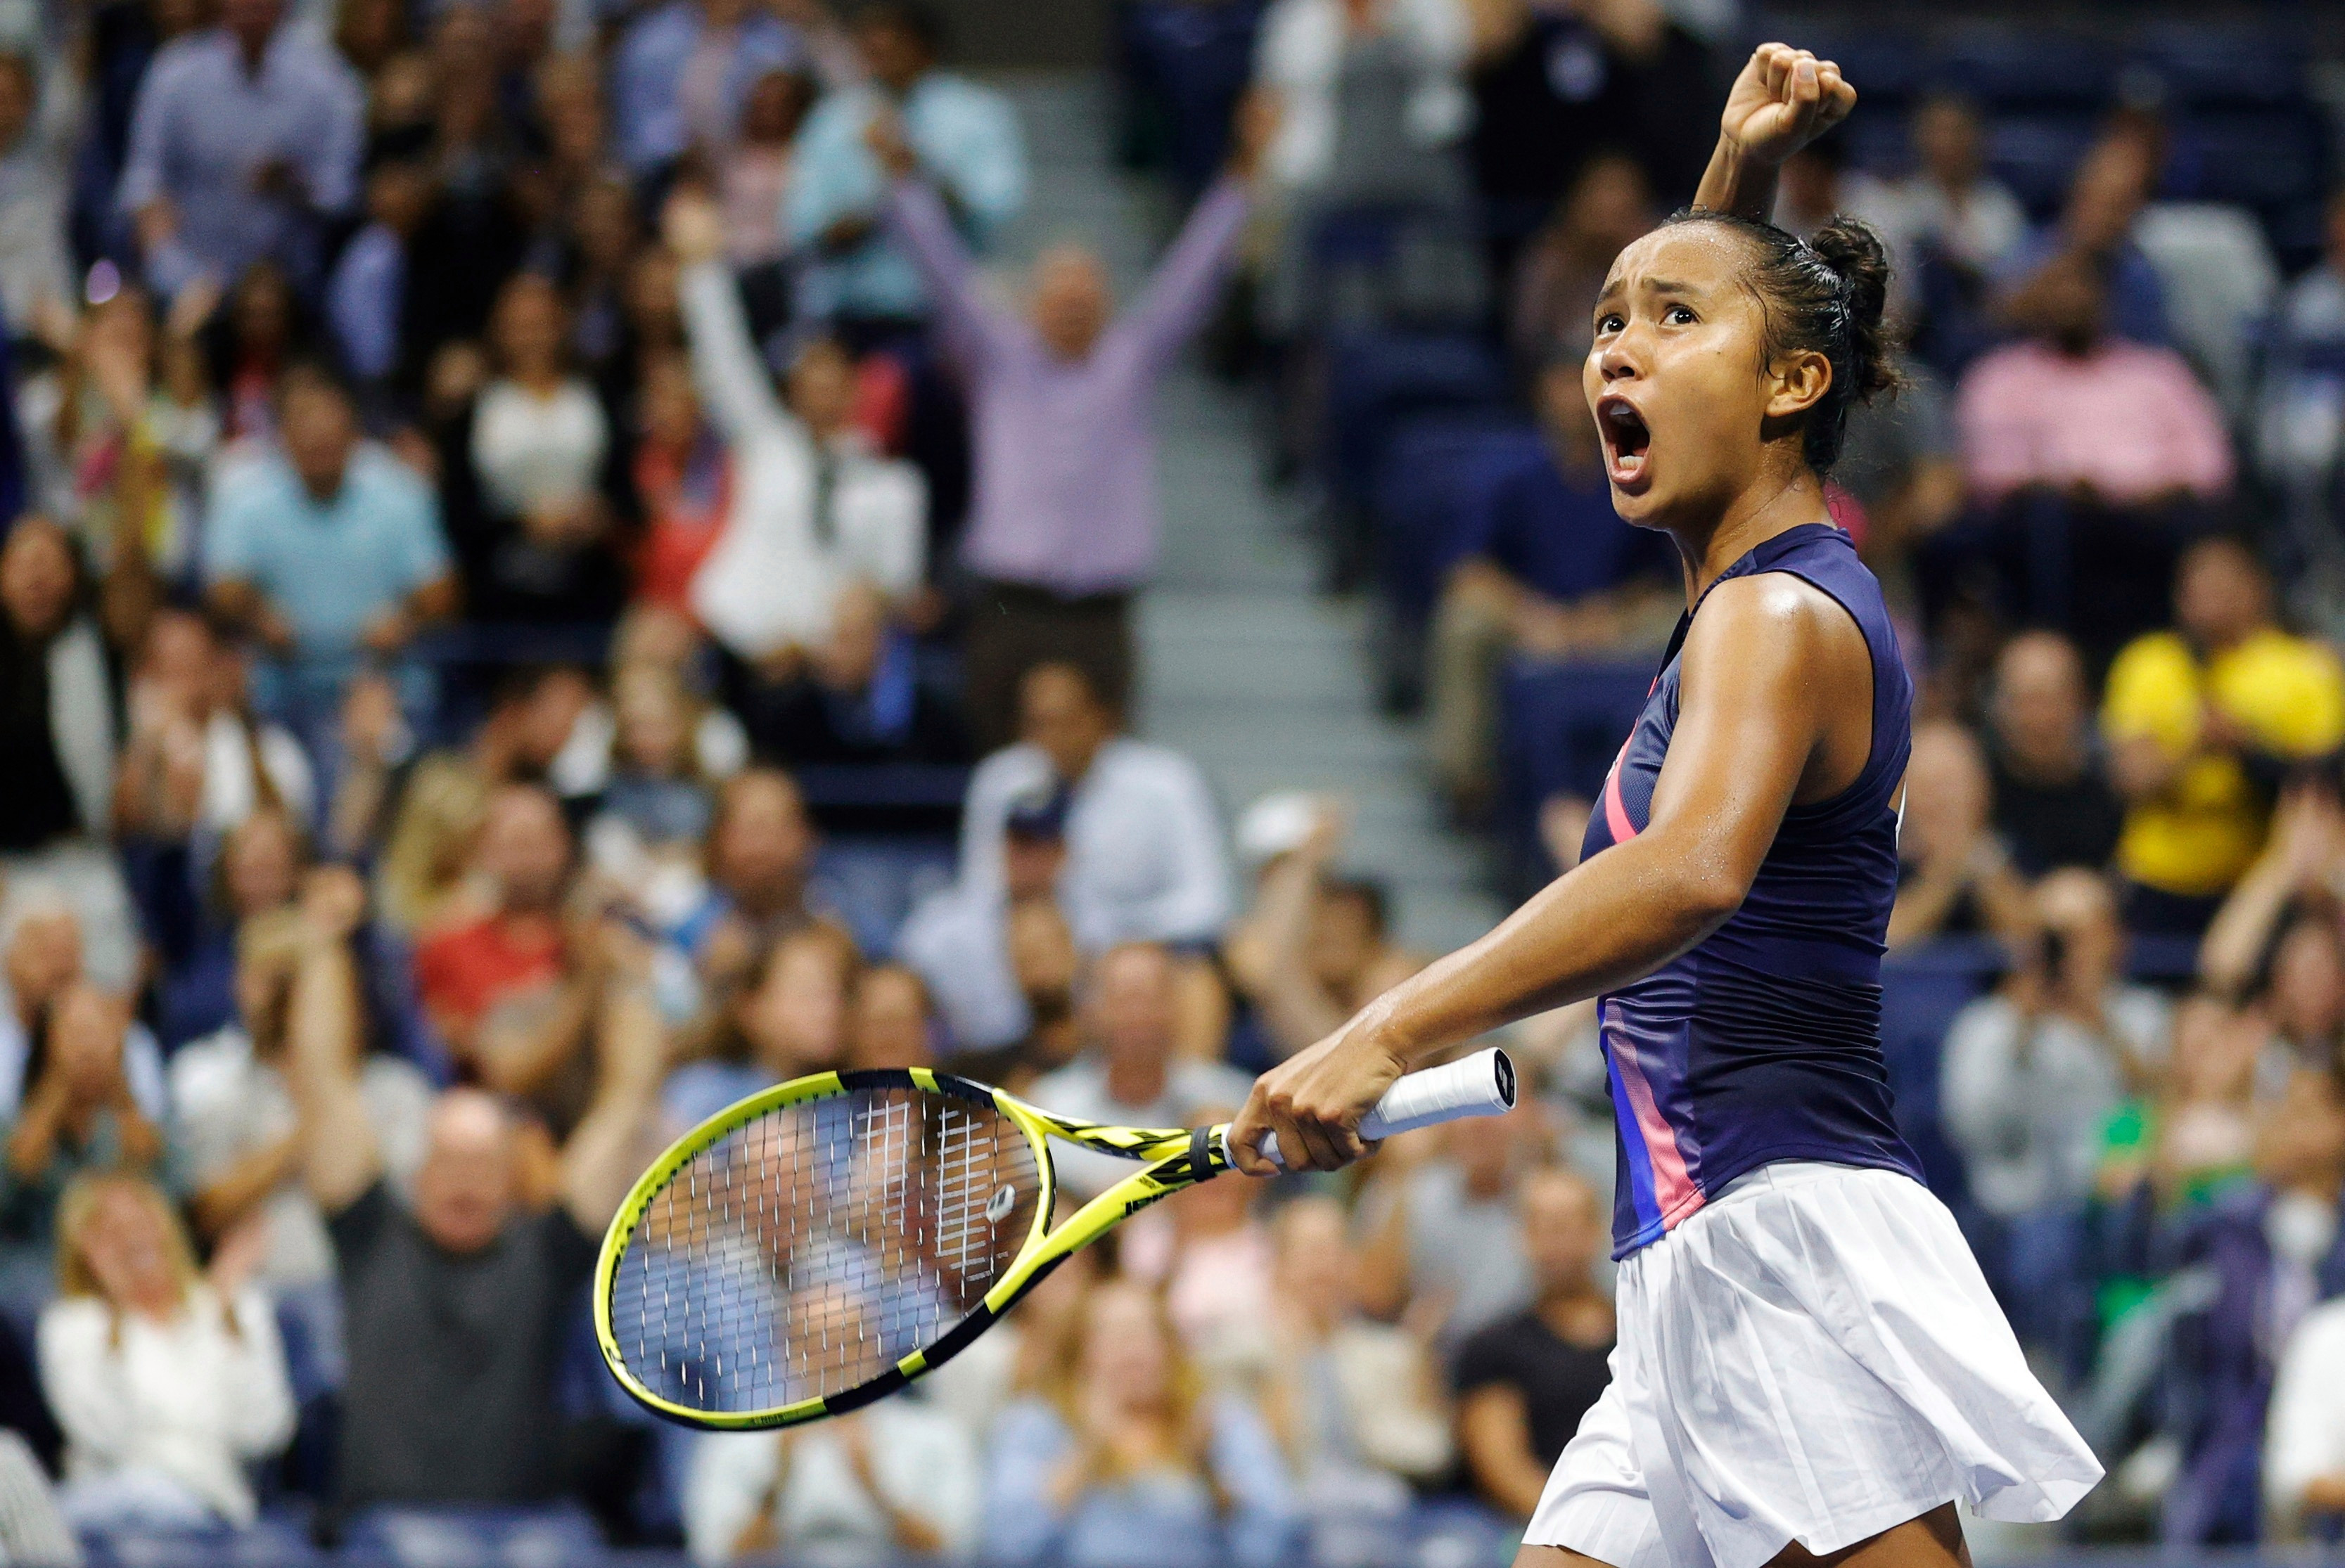 Fernandez has proved popular with the US Open crowd and beat Naomi Osaka en route to the final